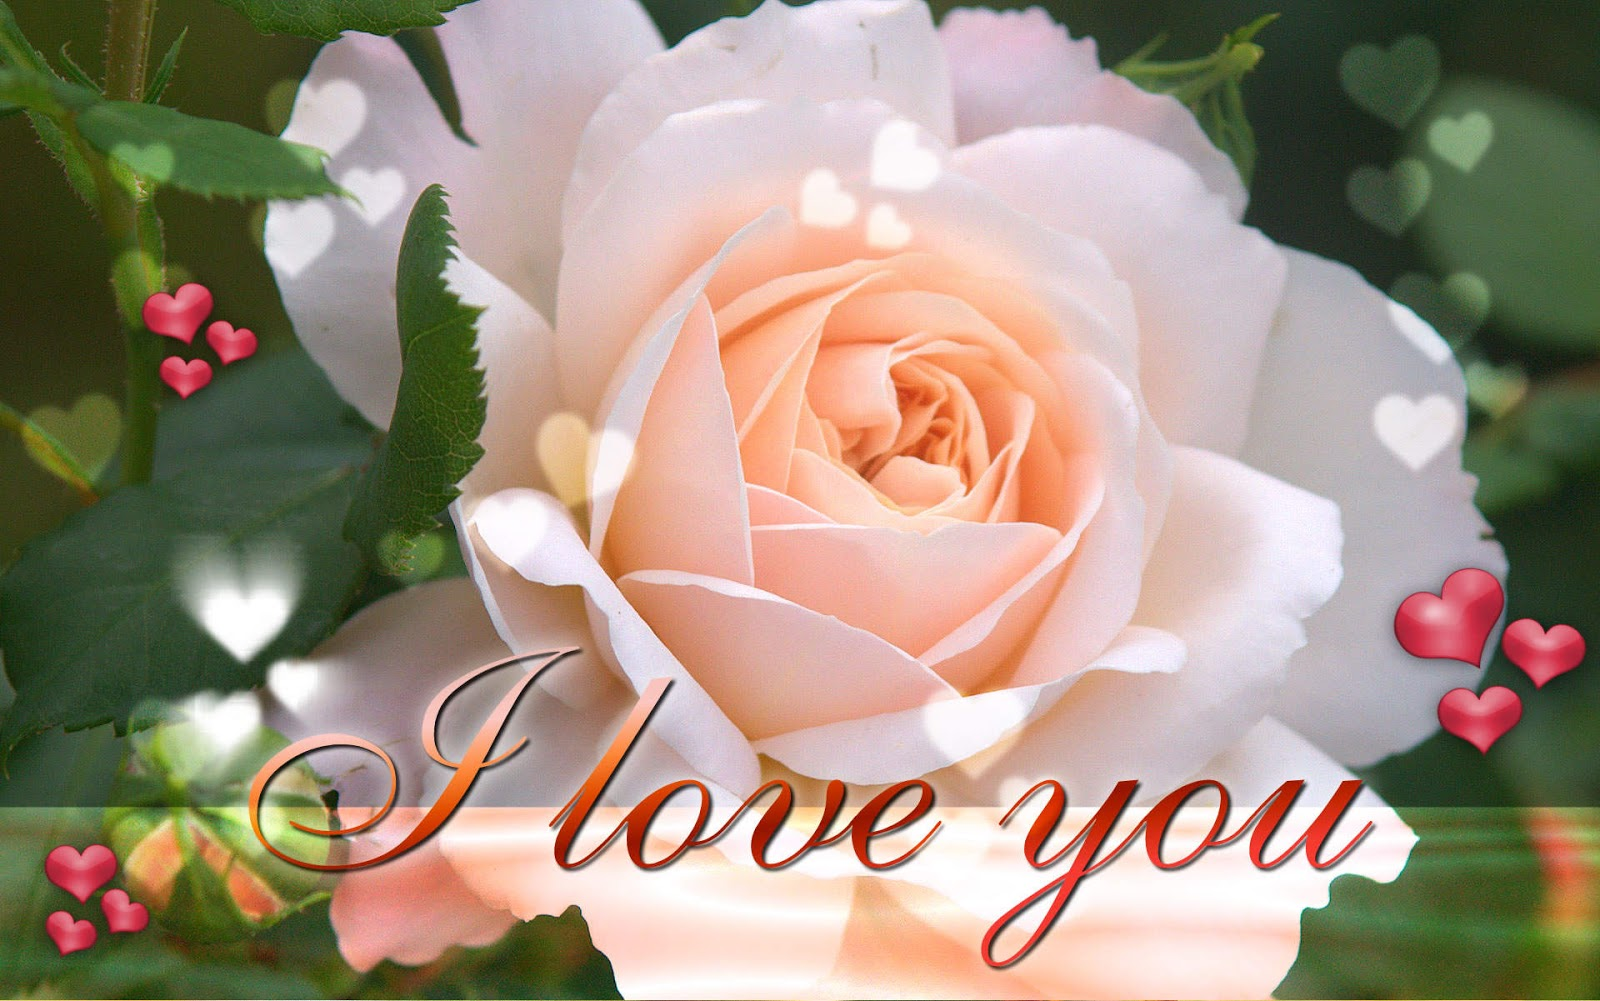 New Latest i love you wallpapers on this valentines day 2016 1600x1001